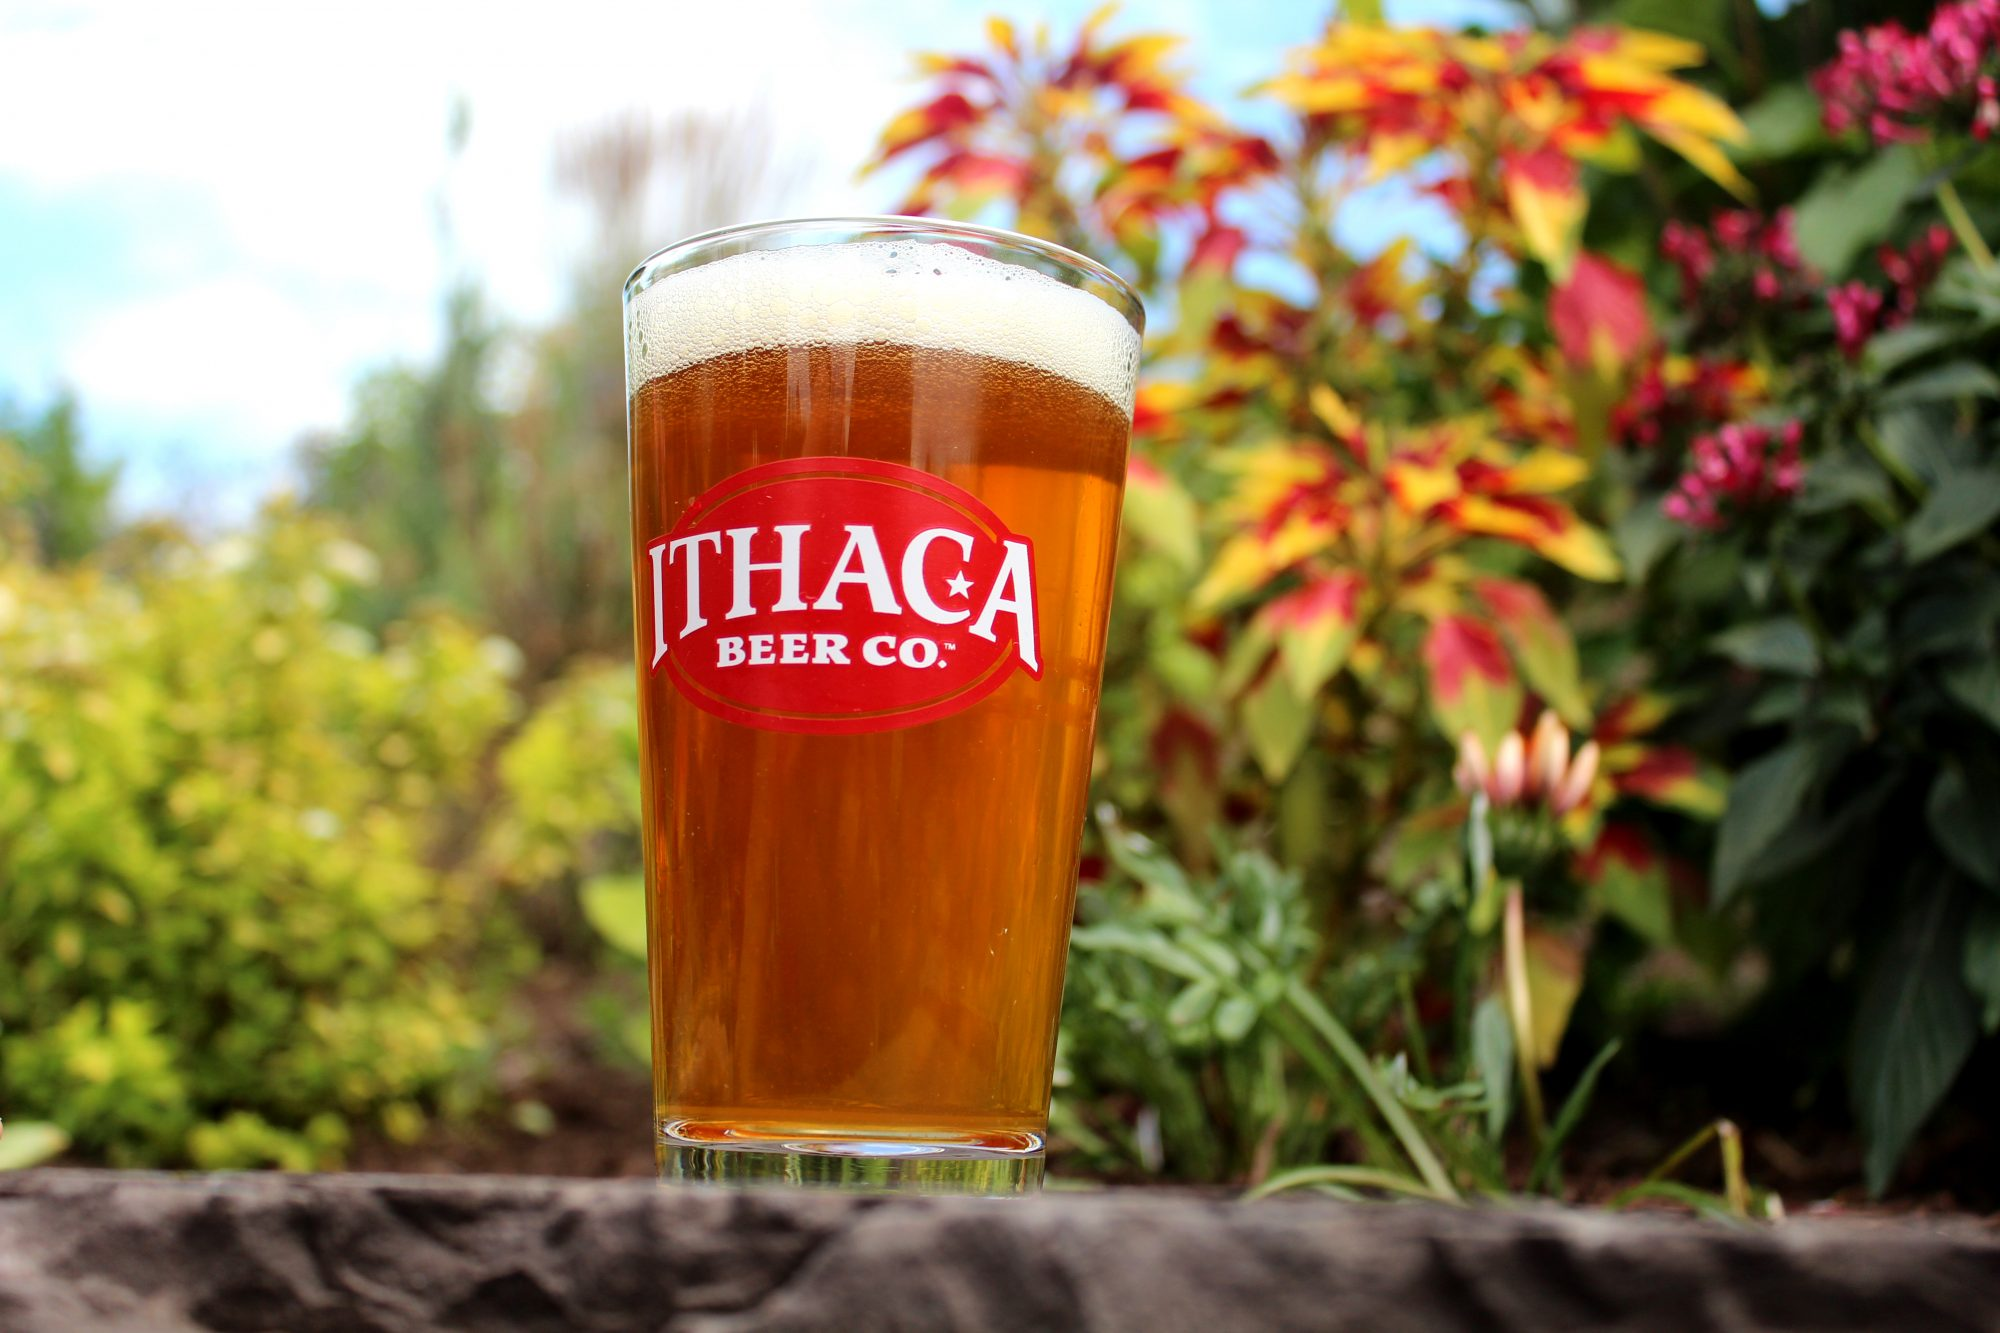 Ithaca Beer Co.